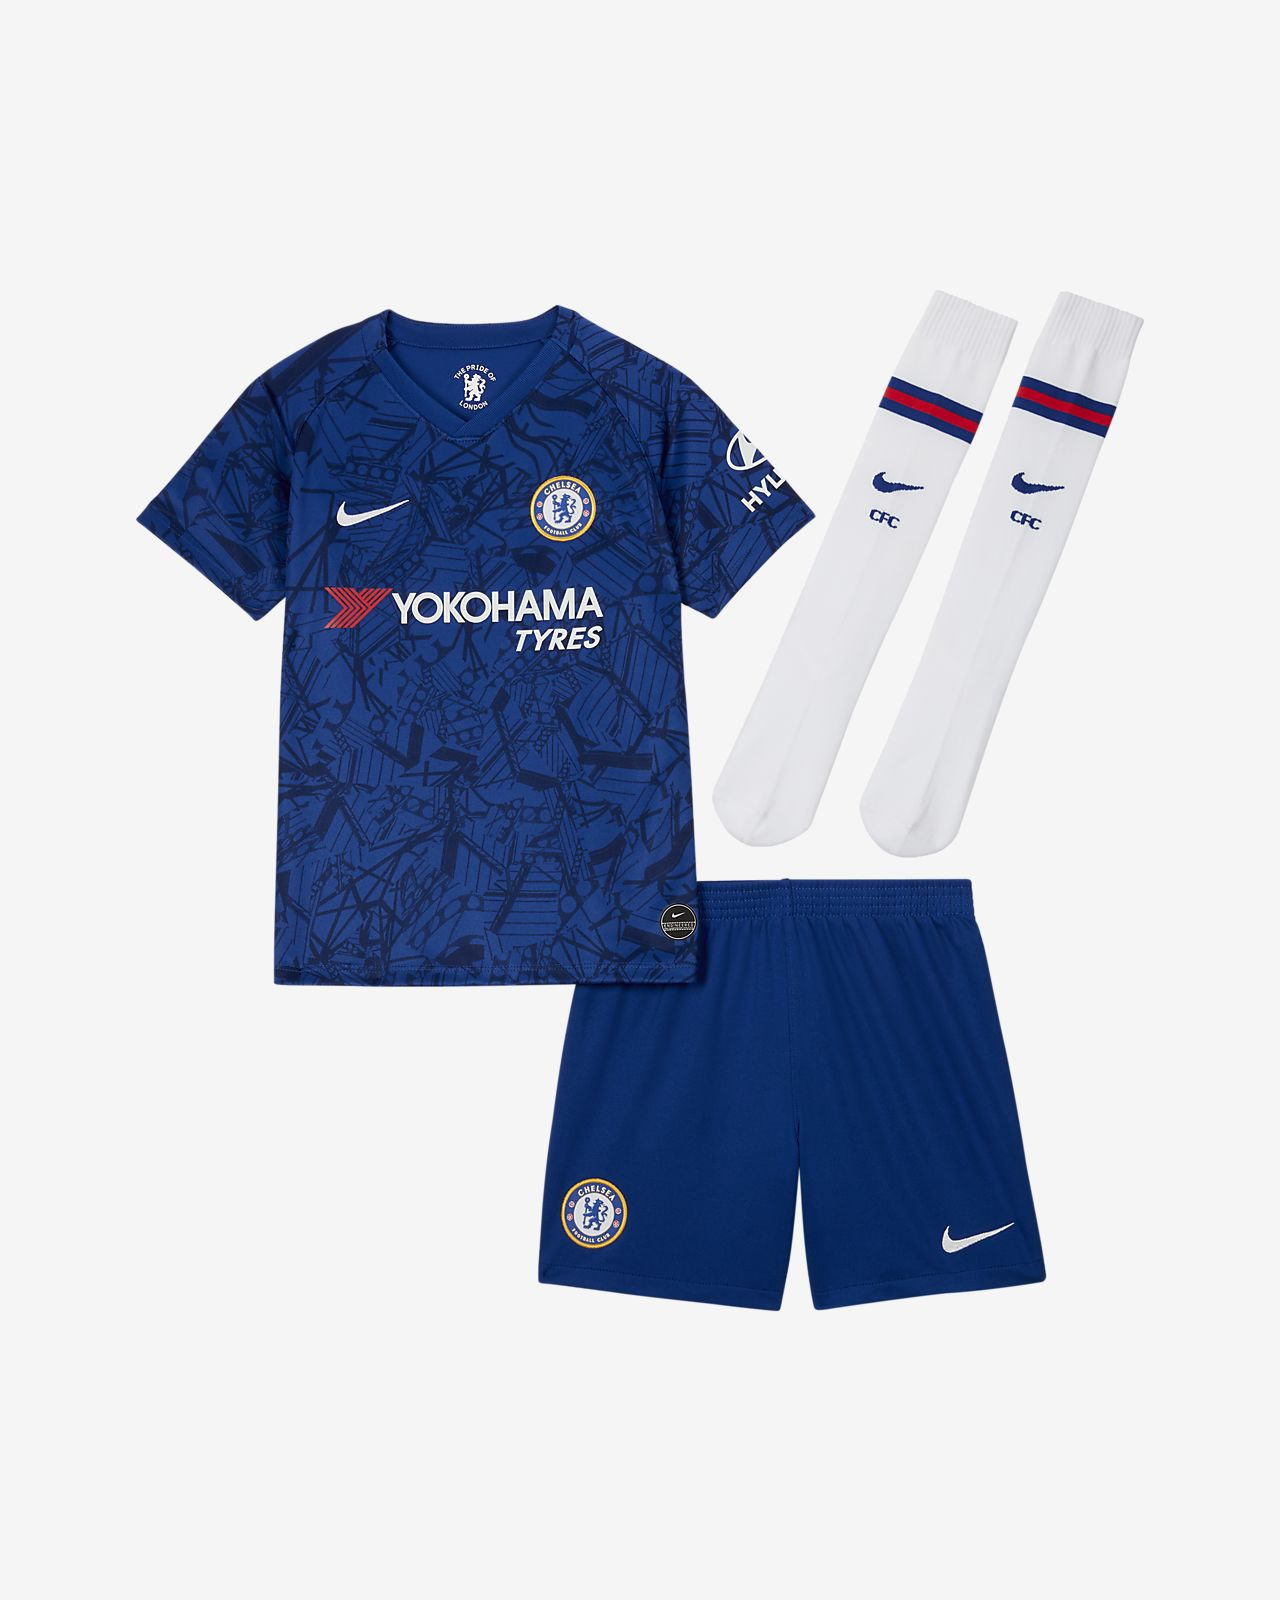 reputable site a1188 88732 chelsea kids jersey